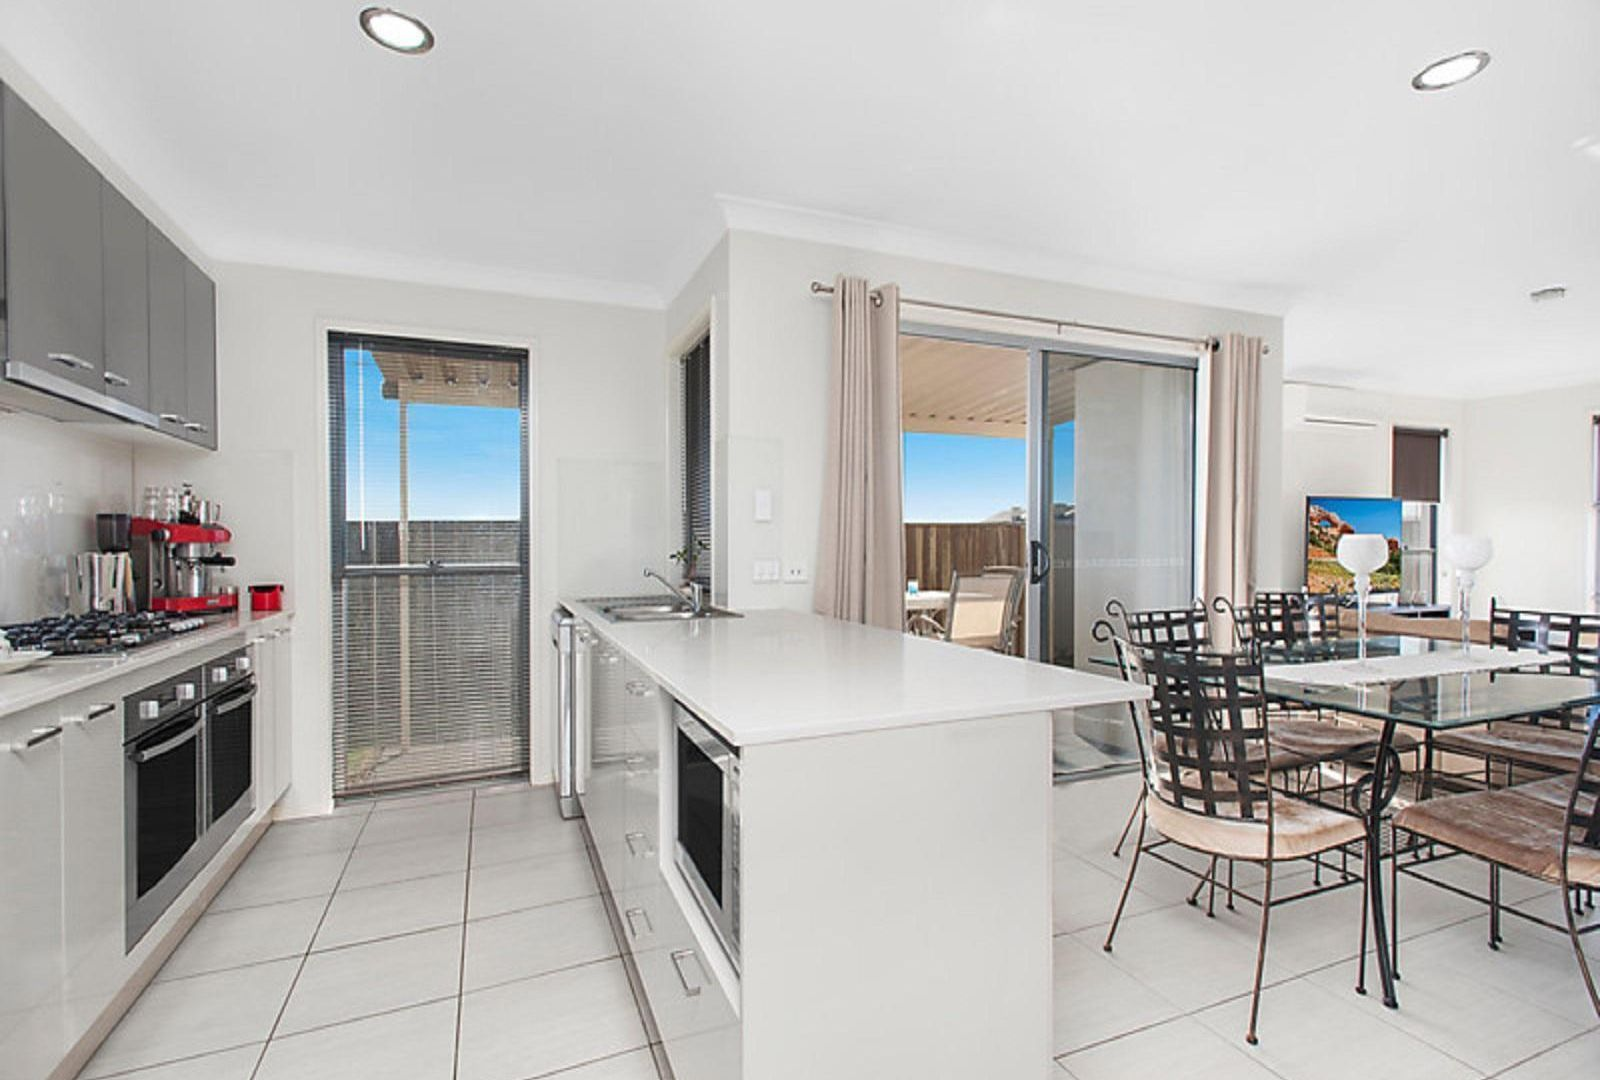 2/16 Argus Court, Middle Ridge QLD 4350, Image 2